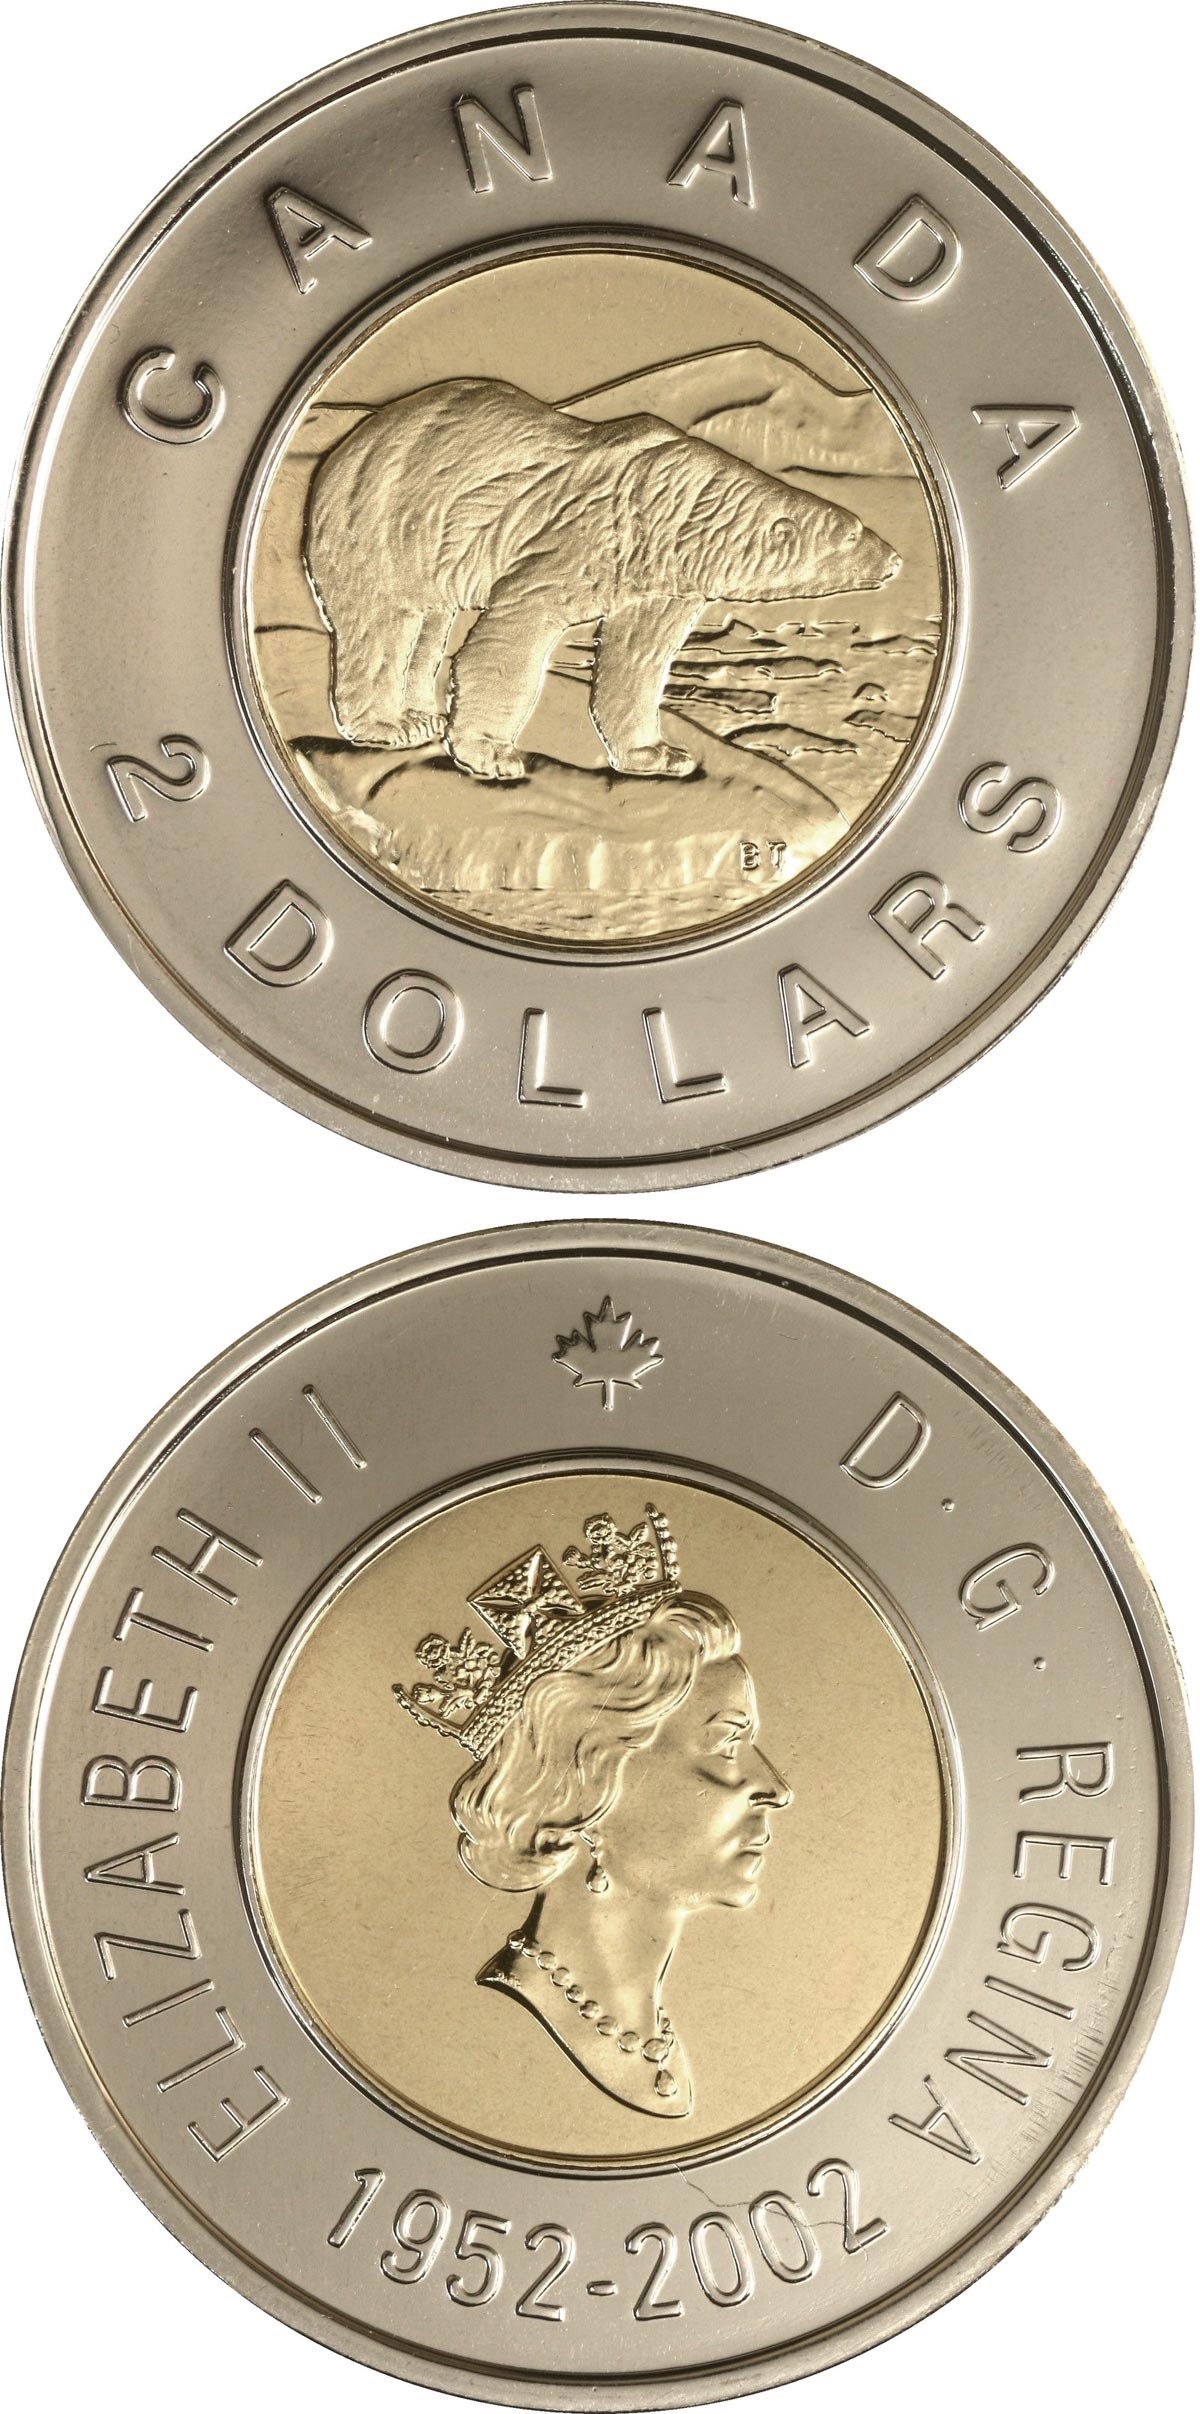 Image of 2 dollars coin - The 50th anniversary of Queen Elizabeth's reign | Canada 2002.  The Bimetal: CuNi, nordic gold coin is of UNC quality.